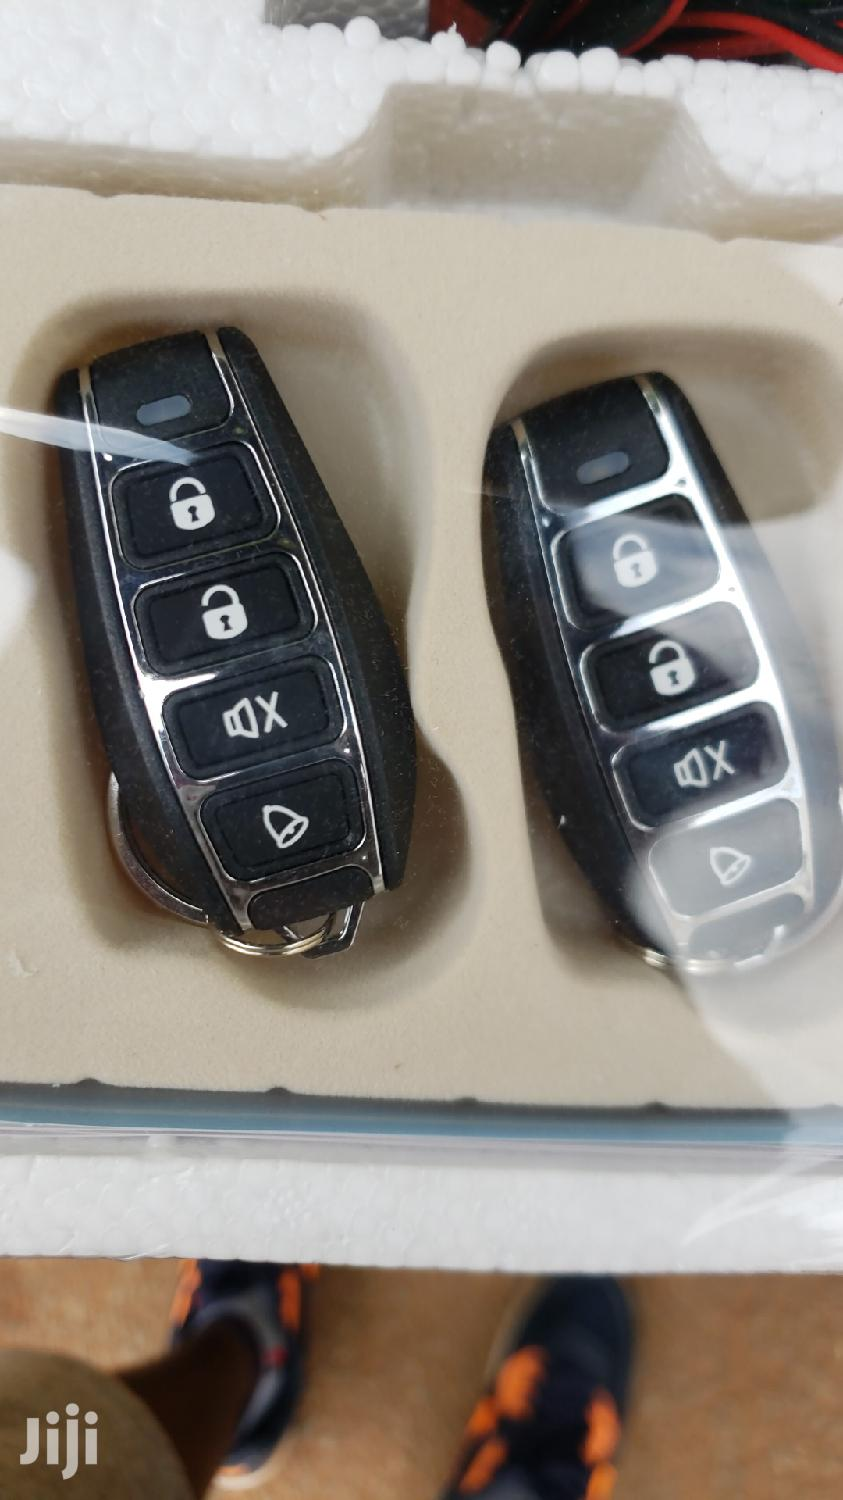 Car Alarm Security   Vehicle Parts & Accessories for sale in Kampala, Central Region, Uganda